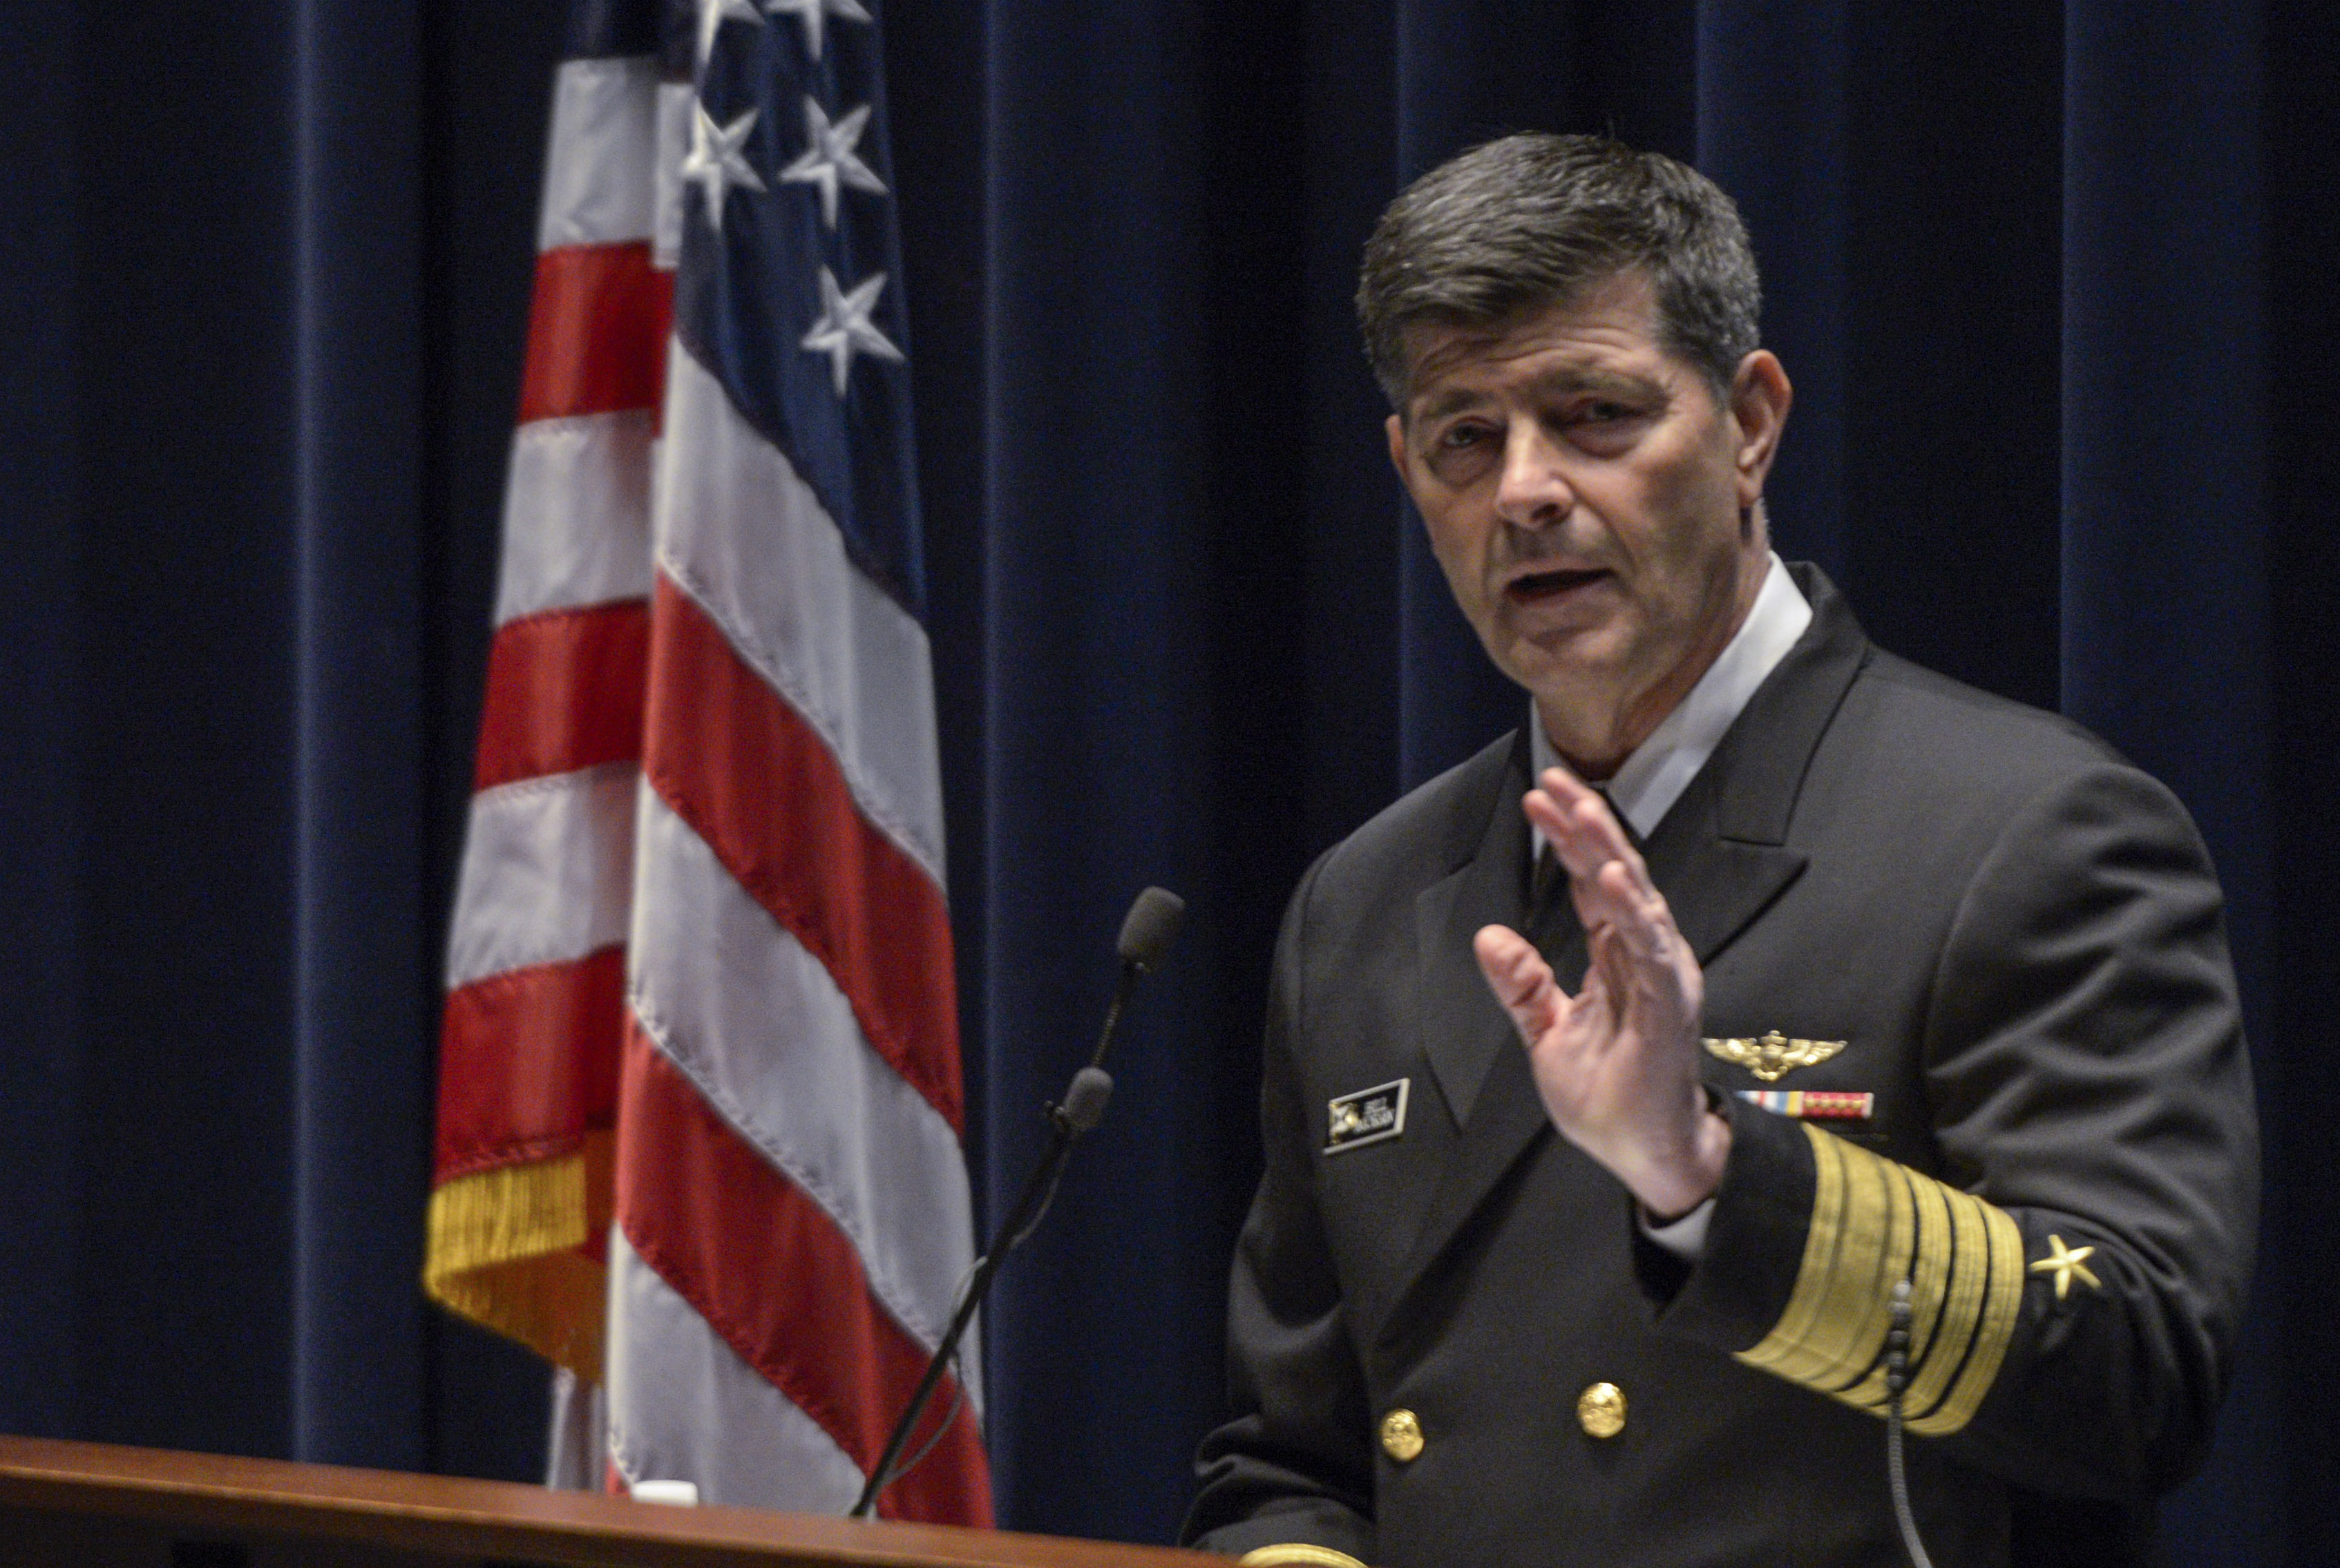 Vice Chief of Naval Operations Adm. William Moran delivers remarks at the 2016 Future Strategy Forum at the Navy Memorial in Washington, D.C., US Navy Photo